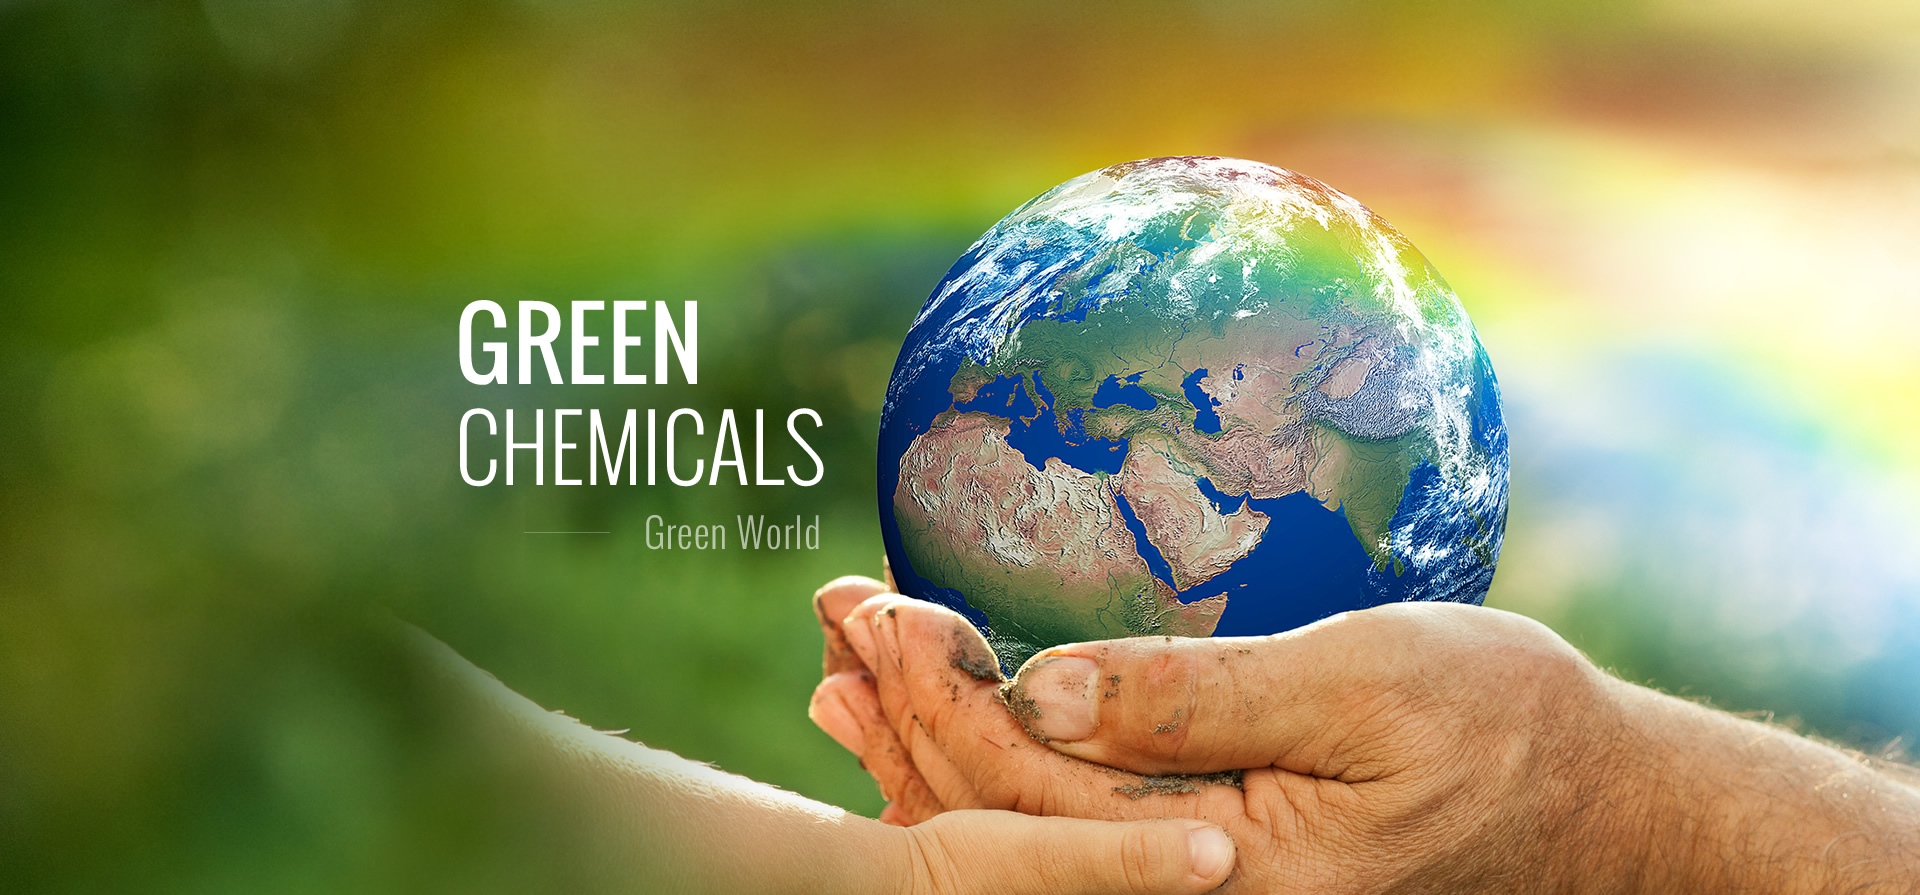 Green Chemicals, Green World